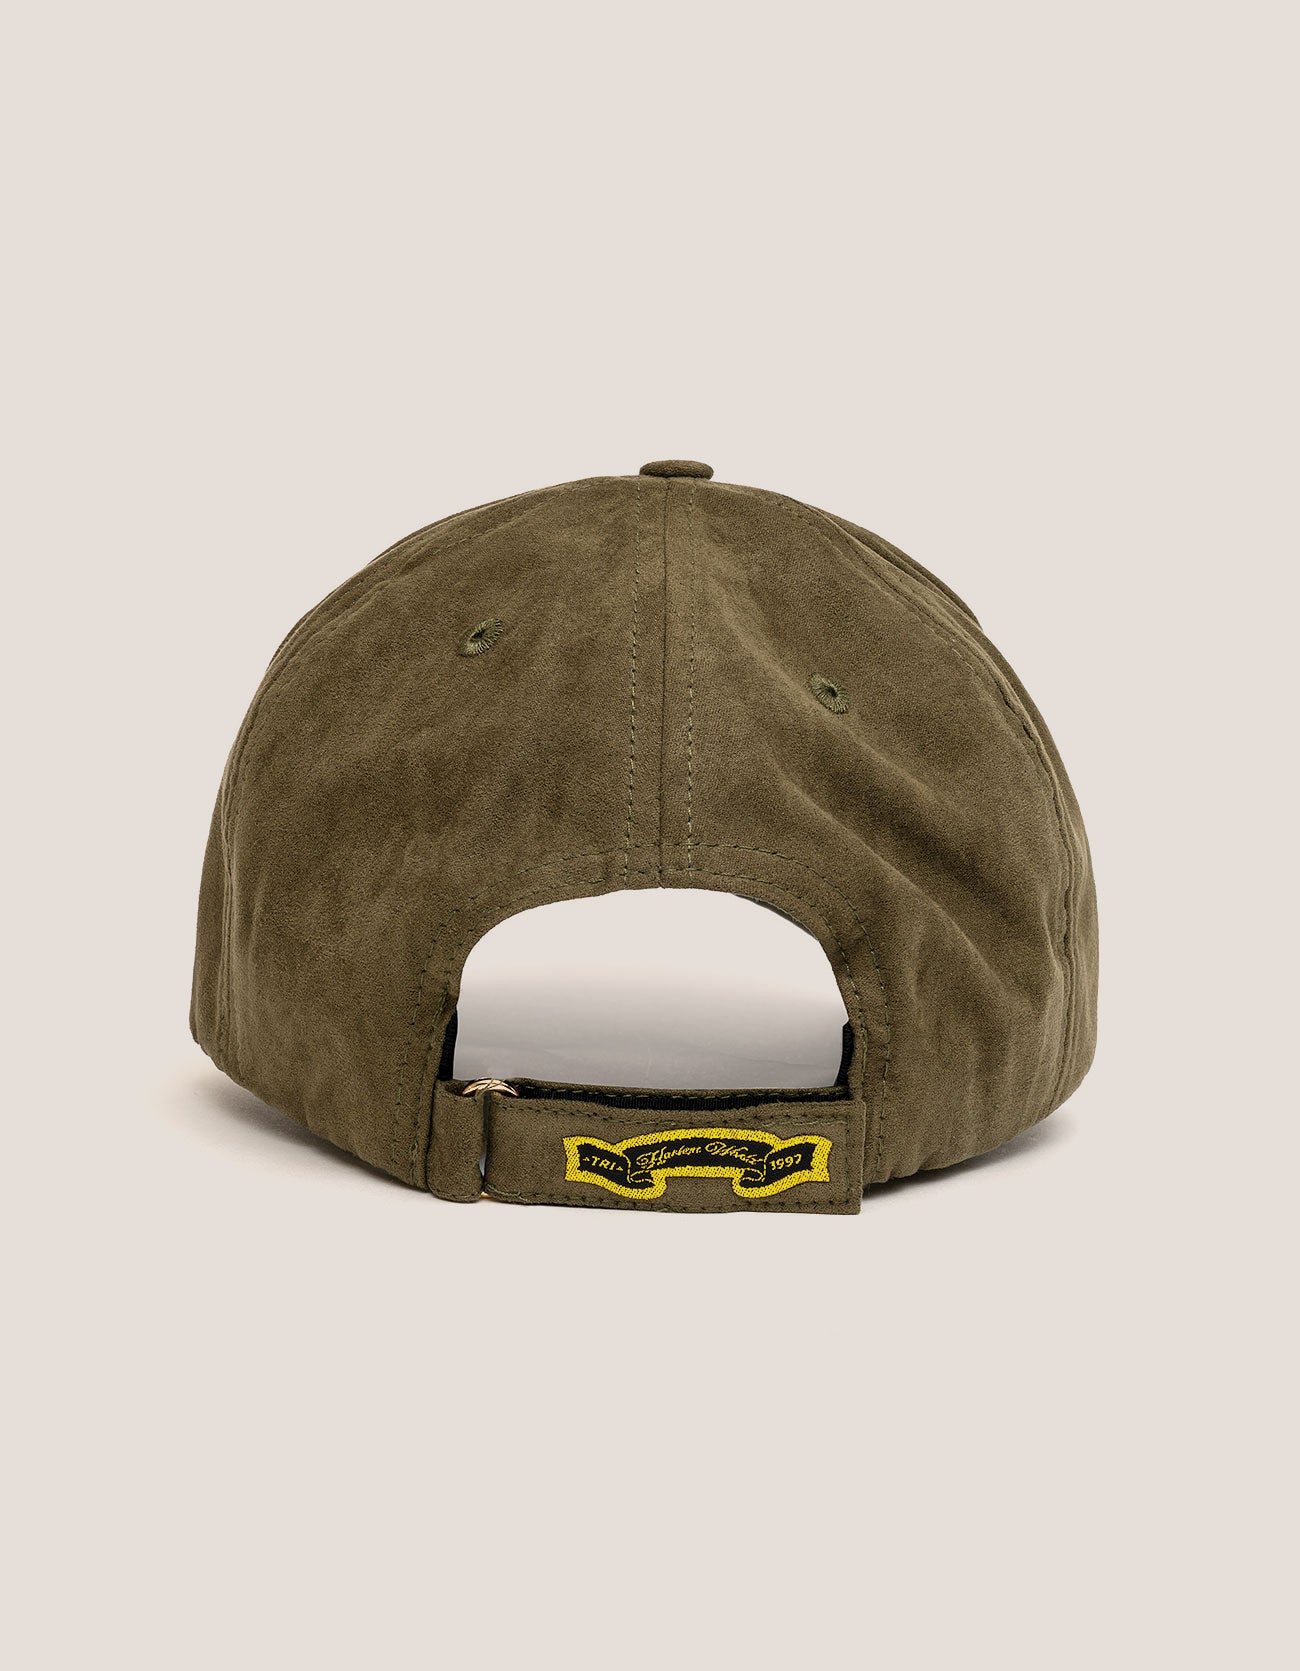 DIPSET COUTURE SUEDE ROCKSTAR HAT OLIVE GREEN